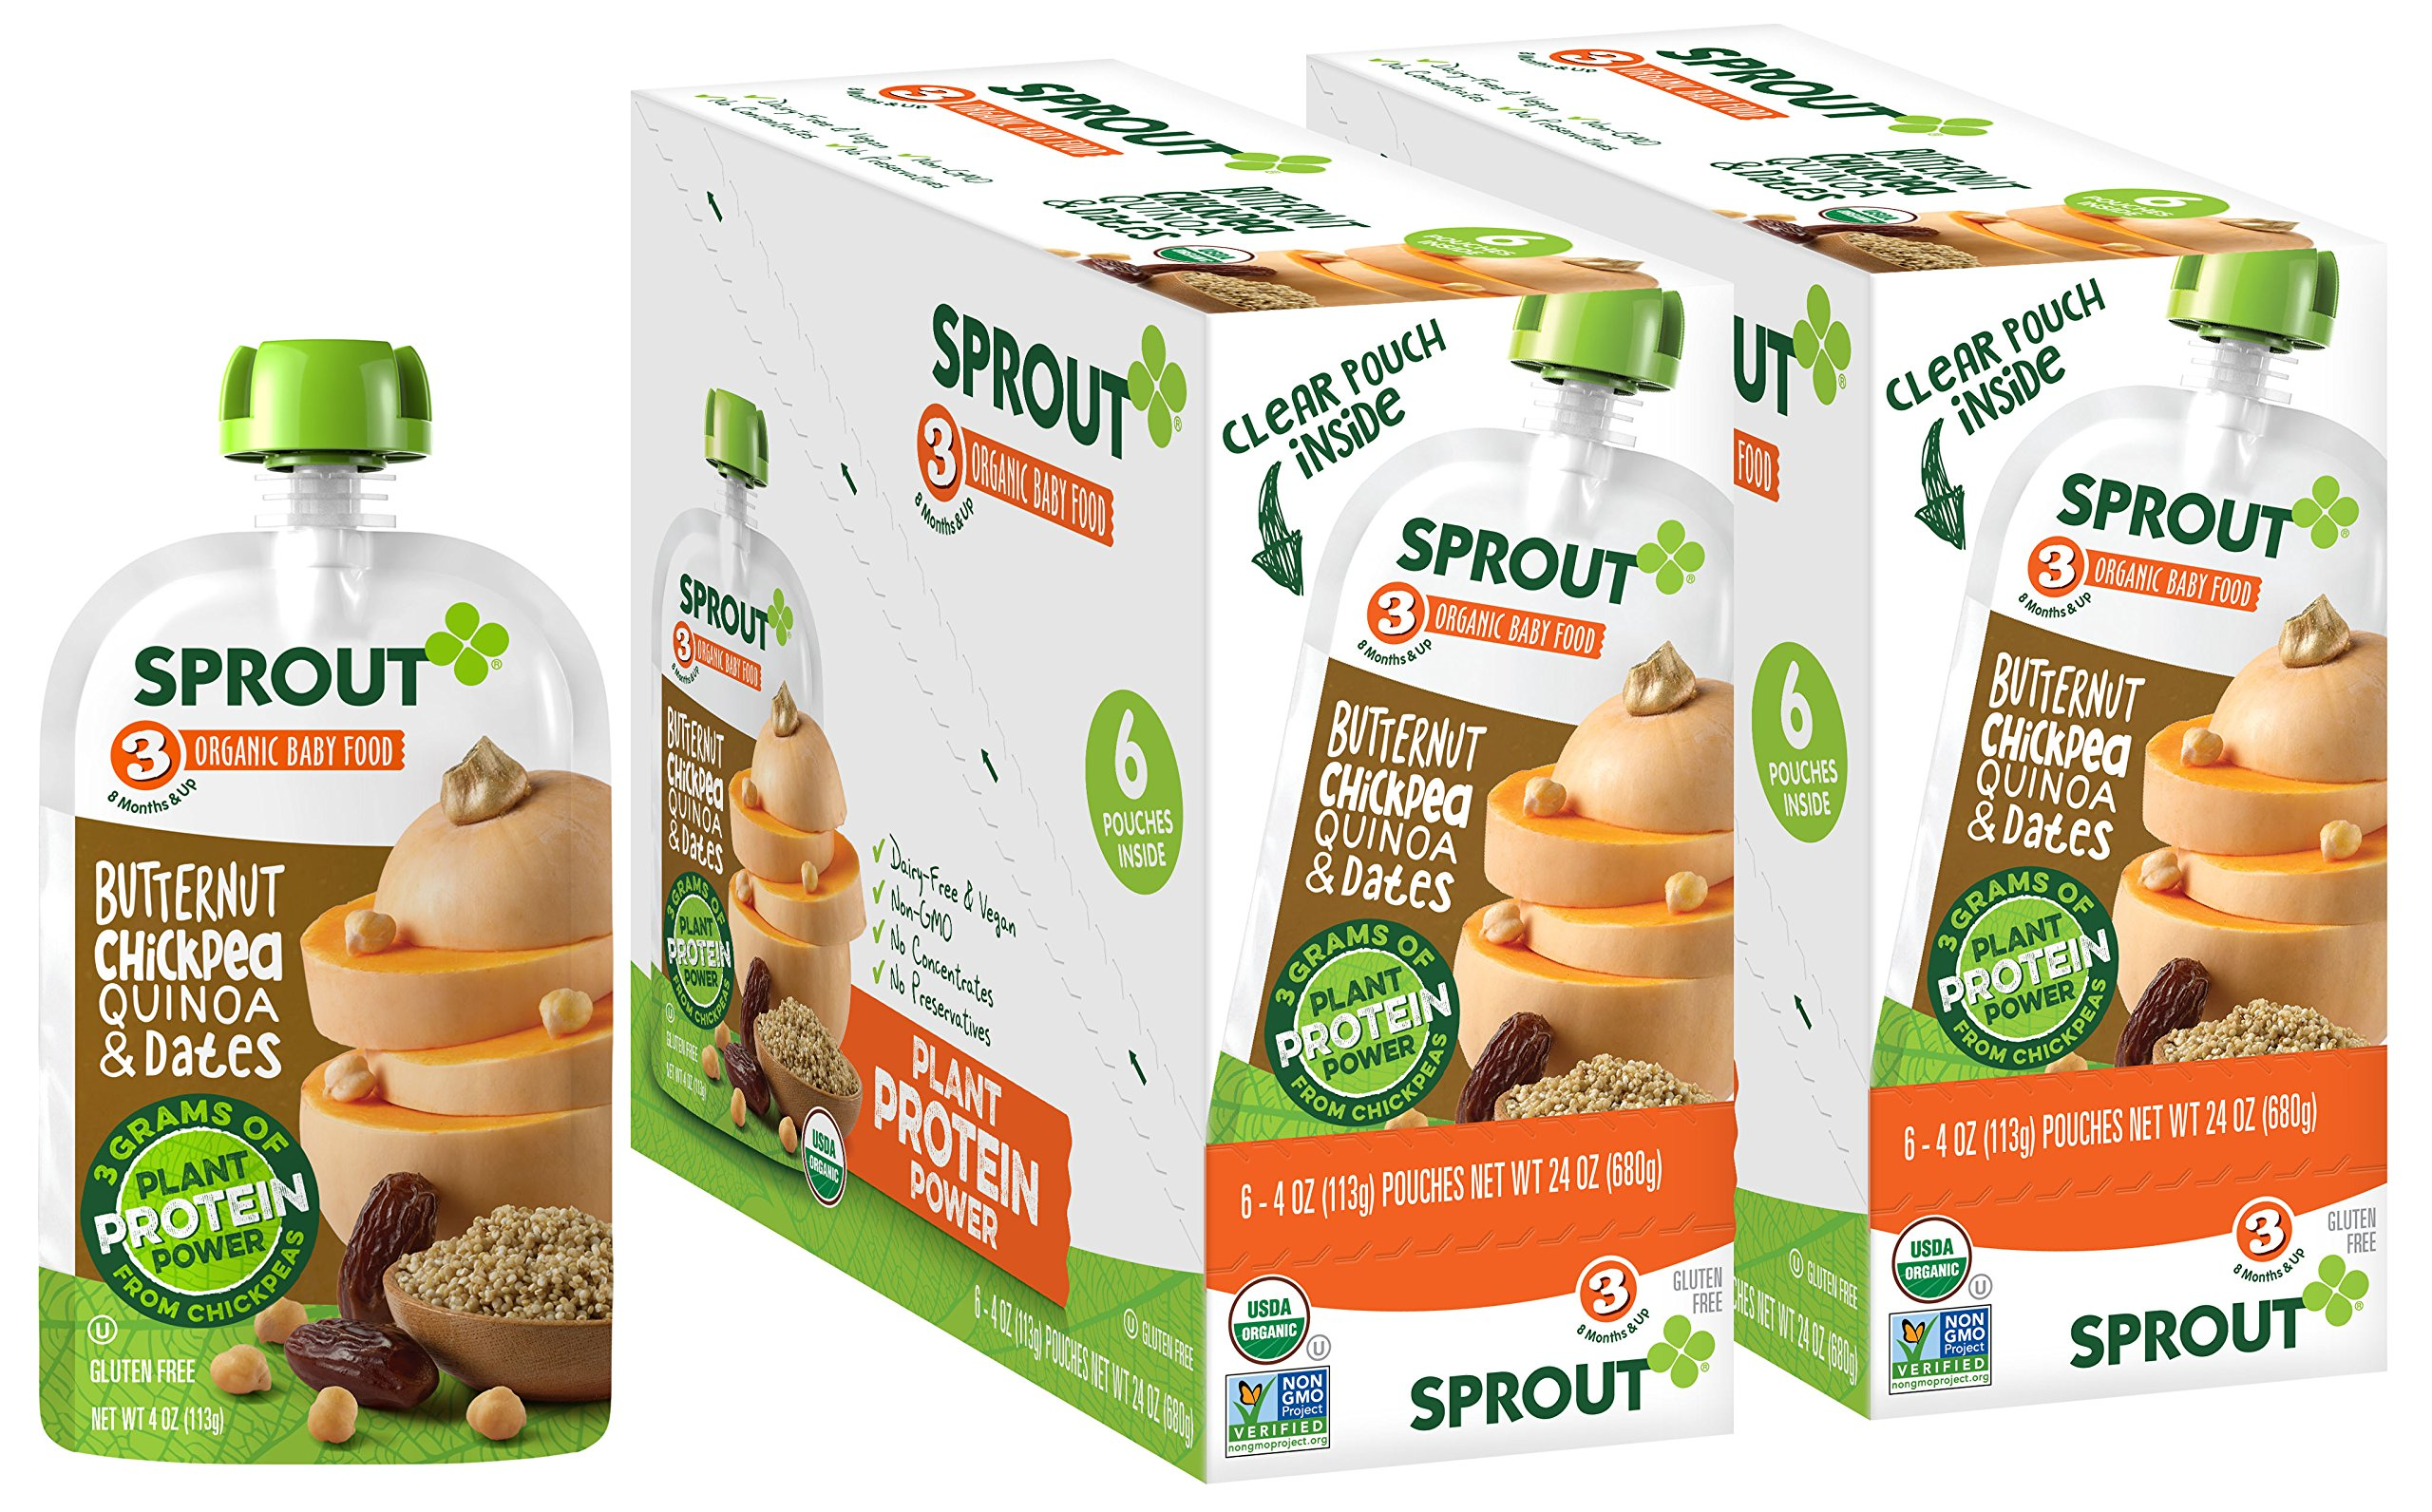 Sprout Organic Baby Food Pouches Stage 3 Sprout Baby Food, Butternut Chickpea Quinoa & Dates, 4 Ounce (Pack of 12); USDA Organic, Non-GMO, 3 Grams of Plant Powered Protein